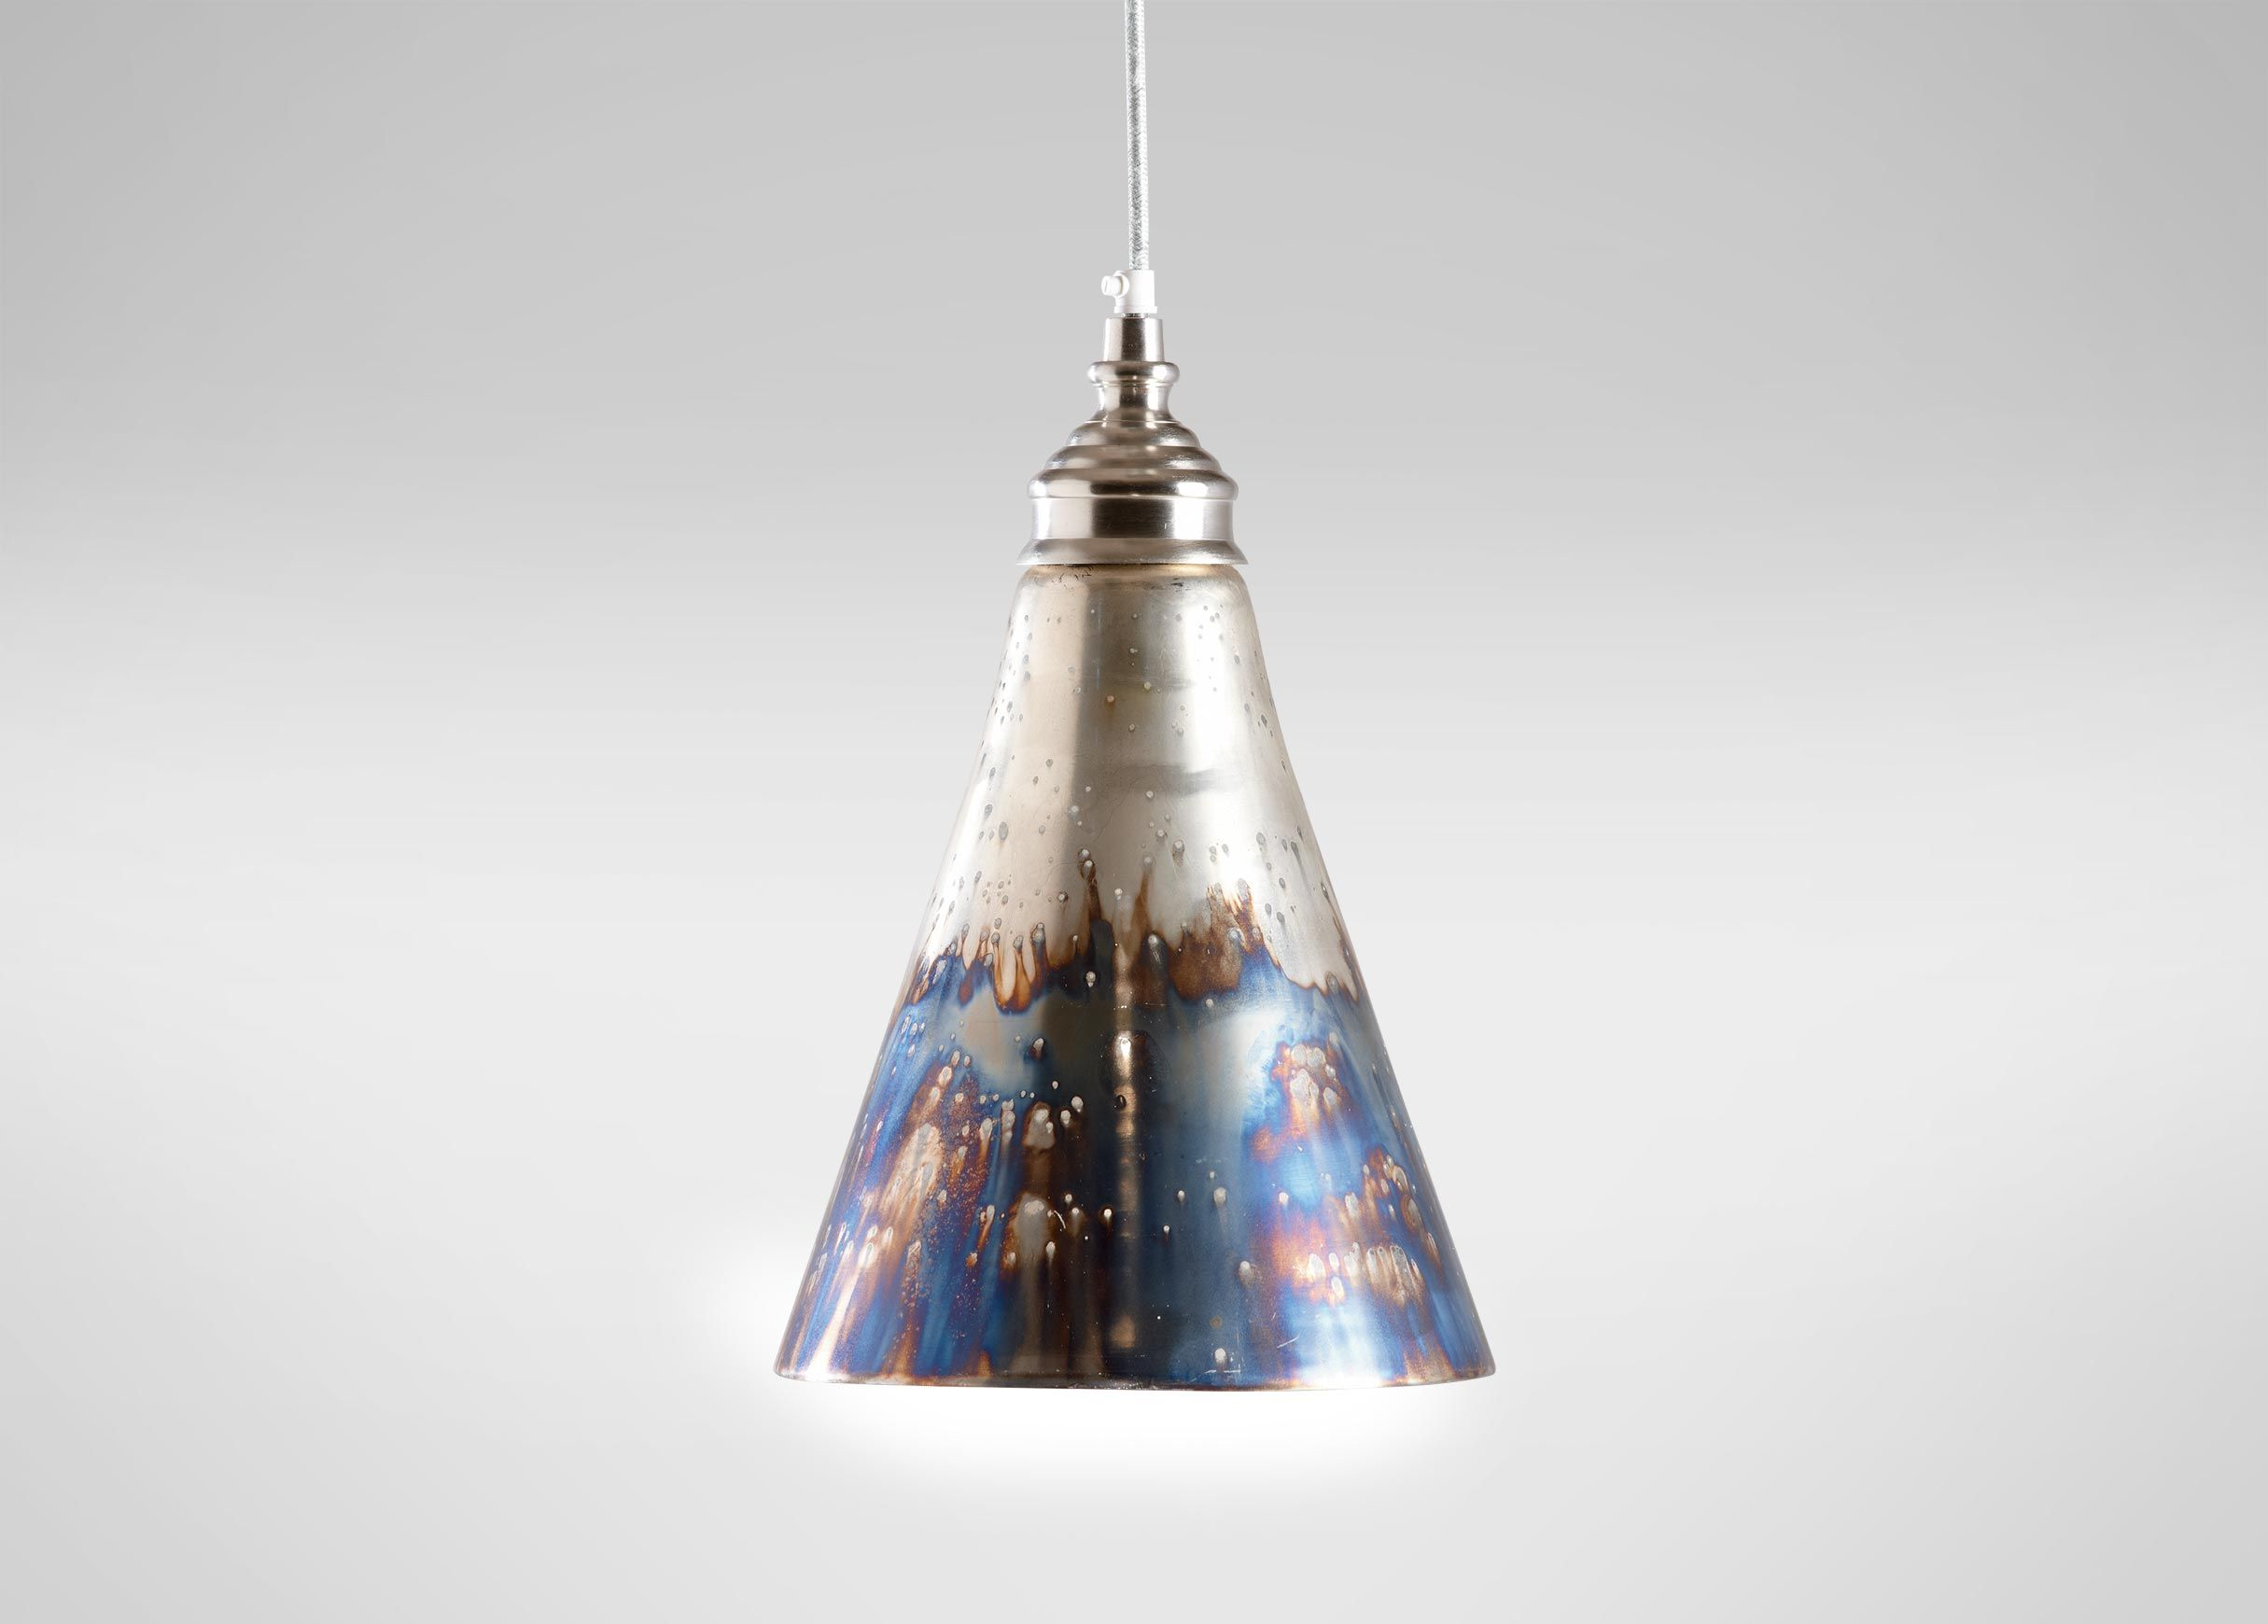 interior rowan pendant crop rowans whitewalltrunklight lighting urban glass products pendants